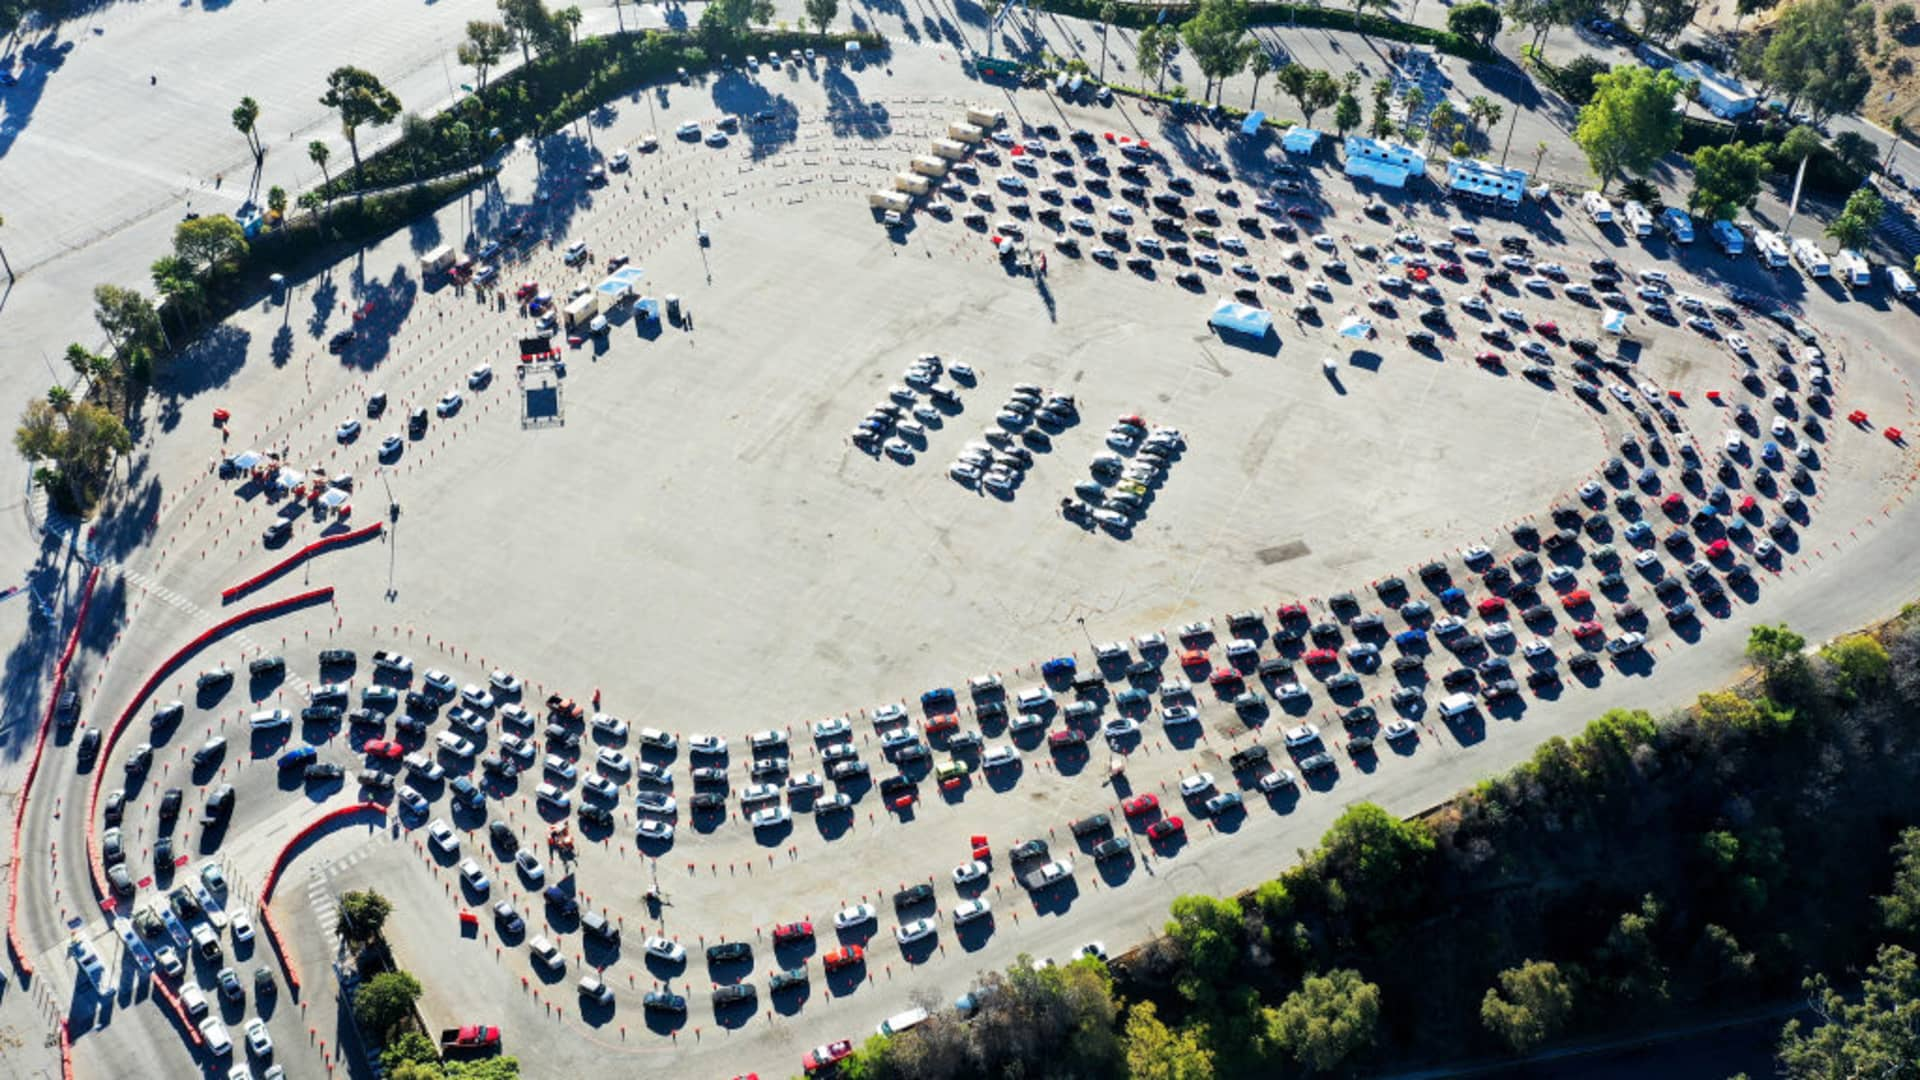 In an aerial view from a drone, cars are lined up at Dodger Stadium for COVID-19 testing on the Monday after Thanksgiving weekend on November 30, 2020 in Los Angeles, California.